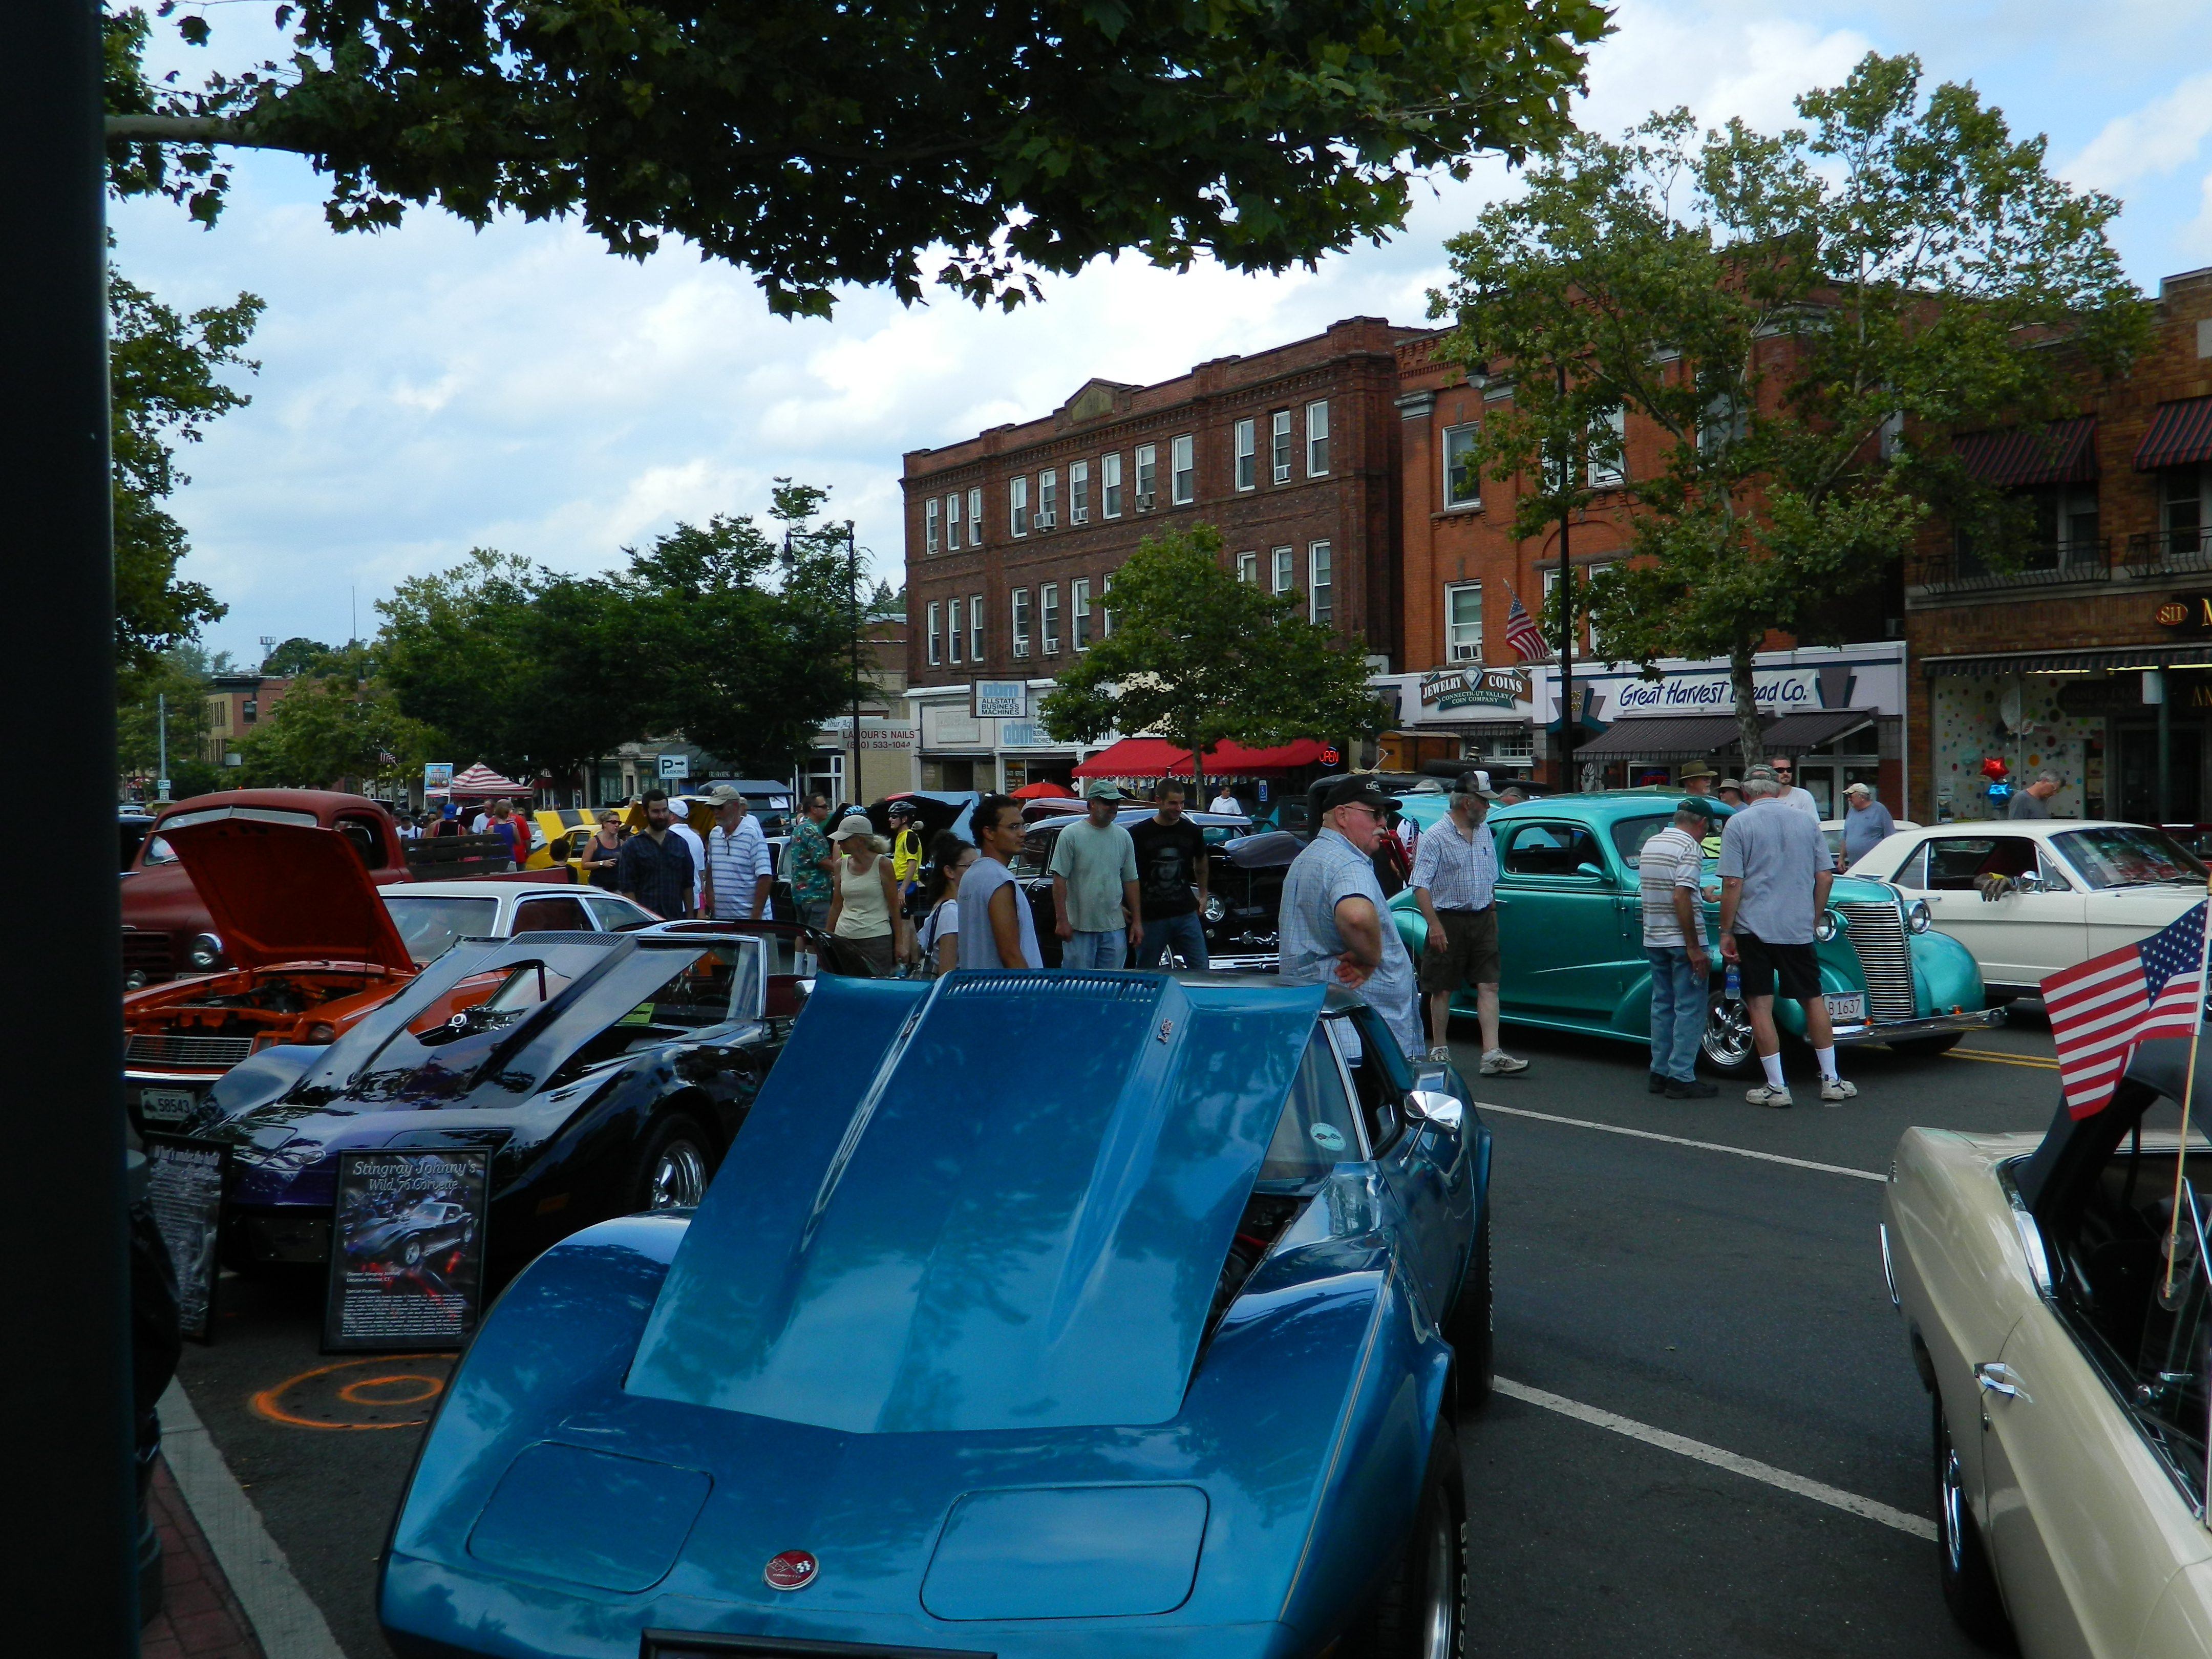 Downtown Manchester Ct Car Show